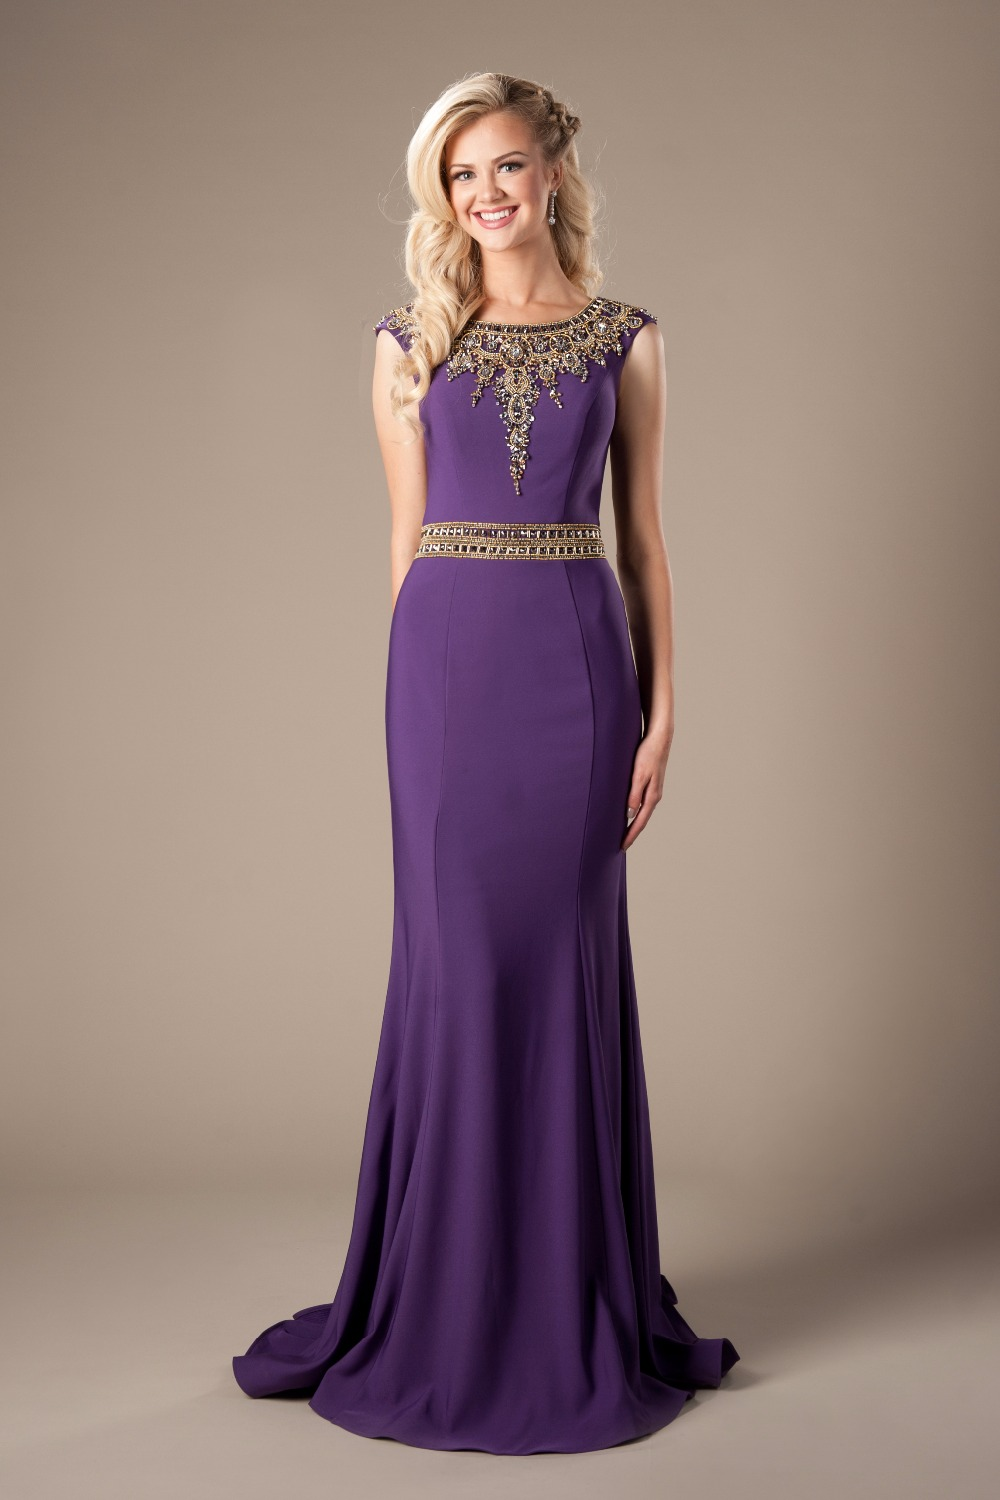 Compare Prices on Formal Purple Dresses- Online Shopping/Buy Low ...